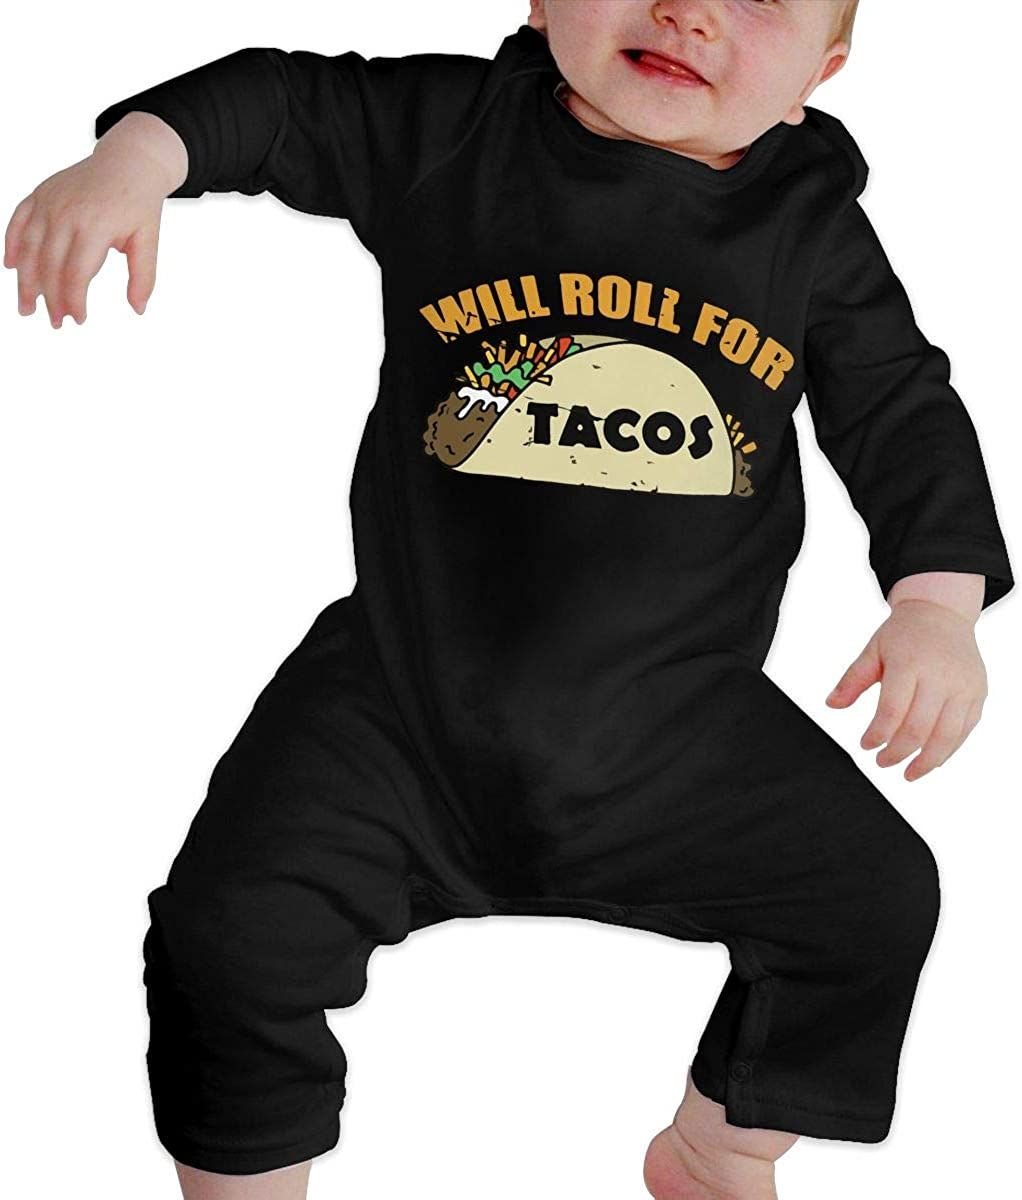 Will Roll for Tacos Jiu Jitsu Organic One-Piece Bodysuits Coverall Outfits BKNGDG8Q Newborn Baby Boy Girl Romper Jumpsuit